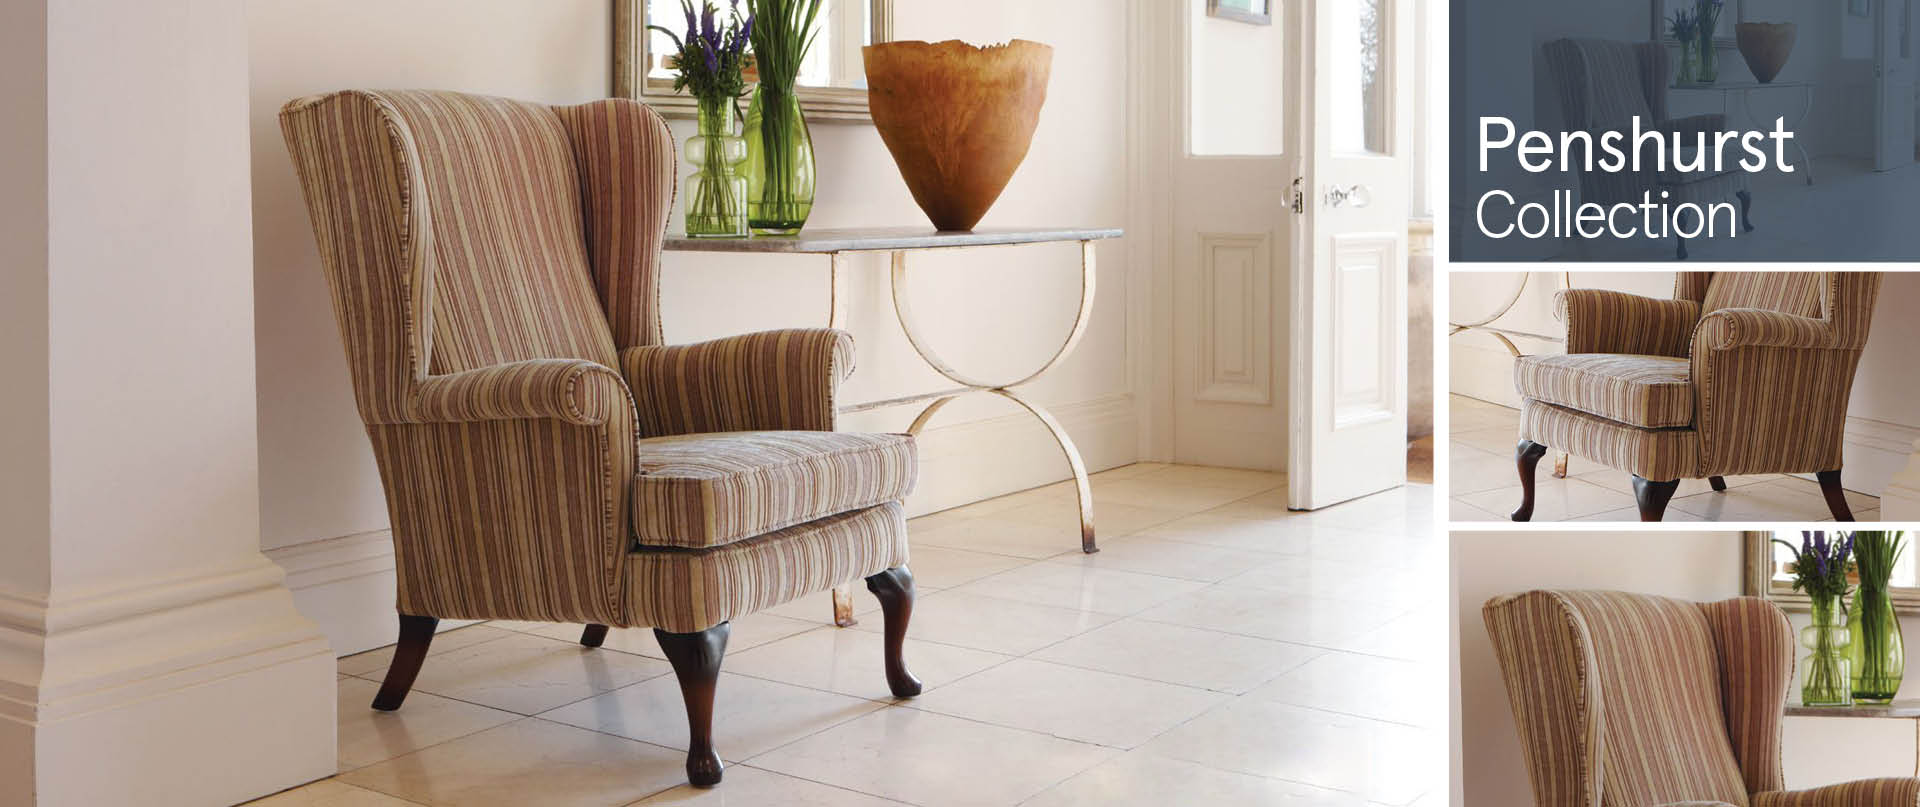 Penshurst Chairs and Footstools Ranges